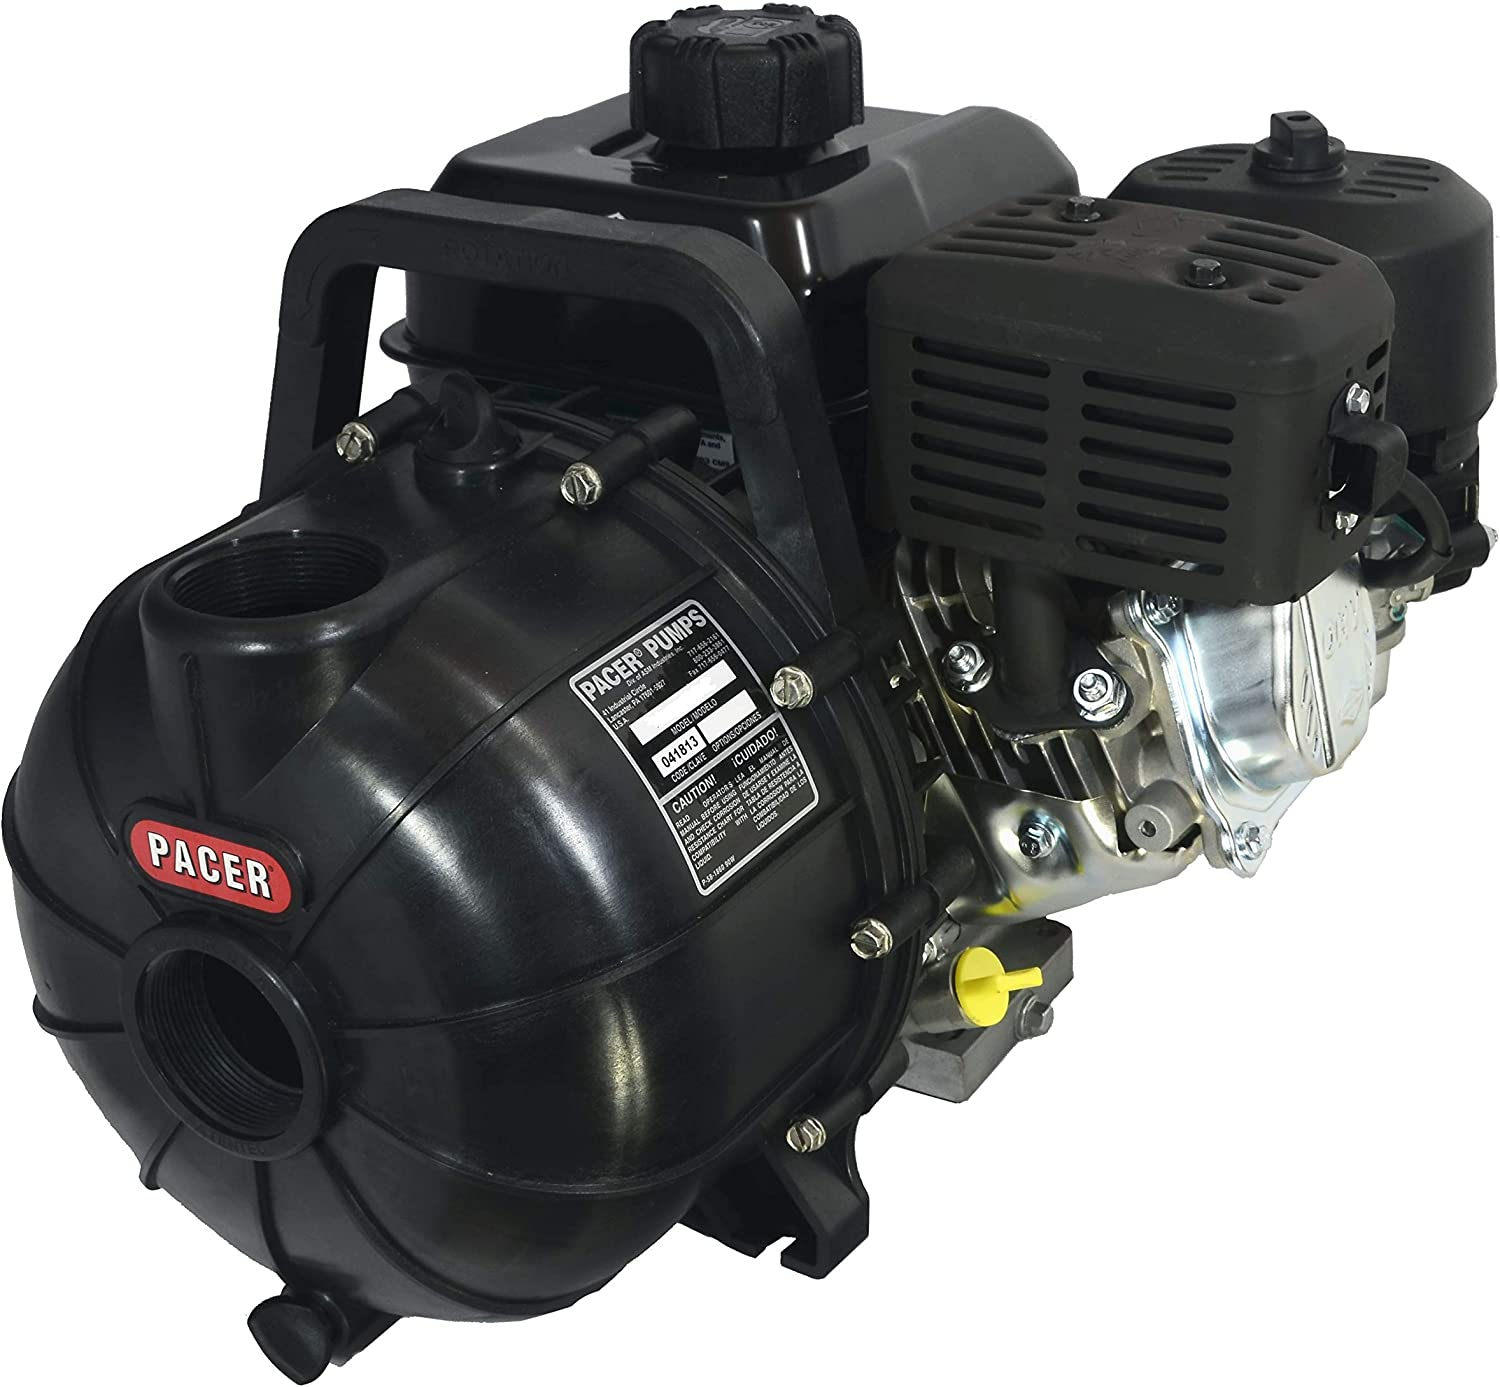 Pacer Pumps SE2PL E550 Multi-Purpose Water Transfer Pump with 2 Inch Inlet and Outlet